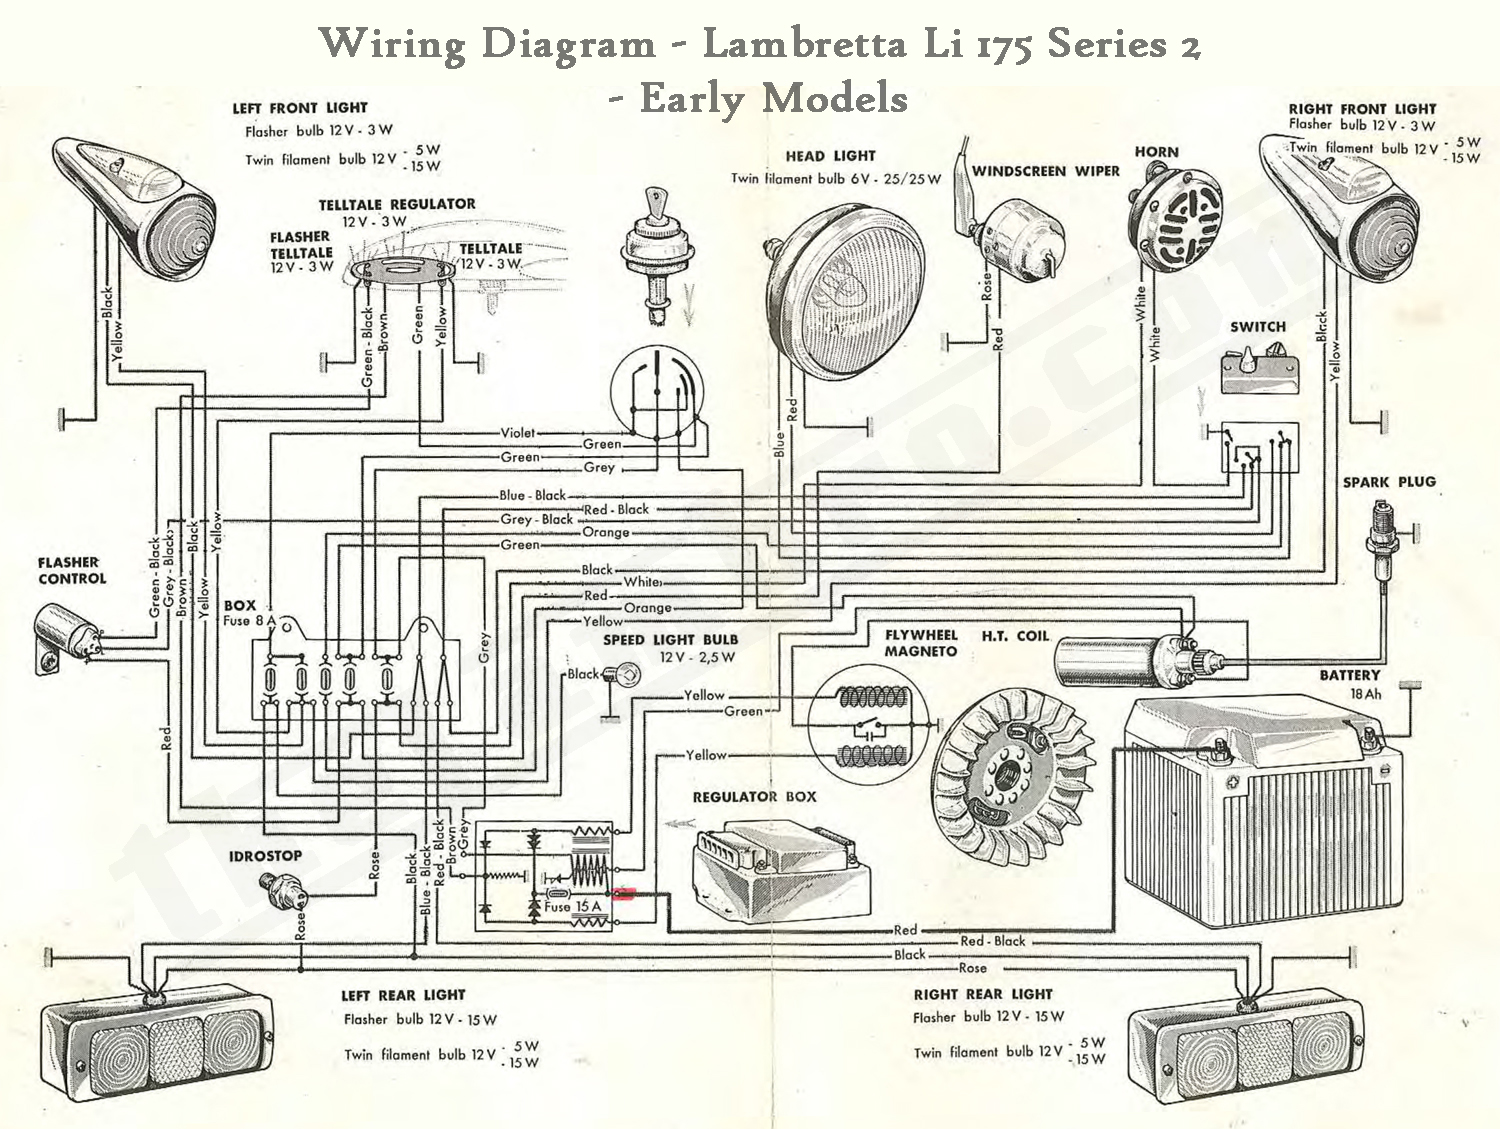 Lambretta S3 Wiring Diagram - Search For Wiring Diagrams •